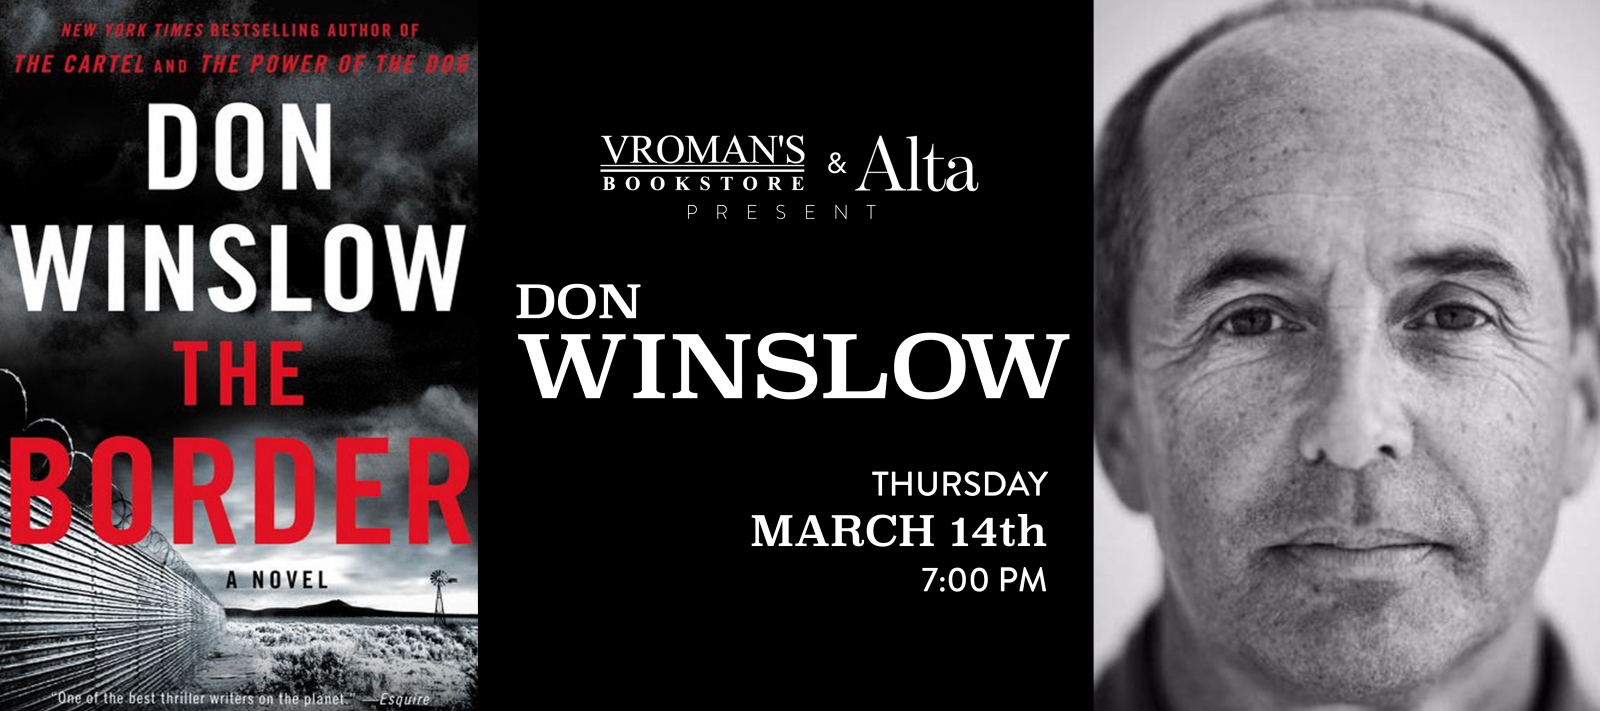 Don Winslow Book Signing